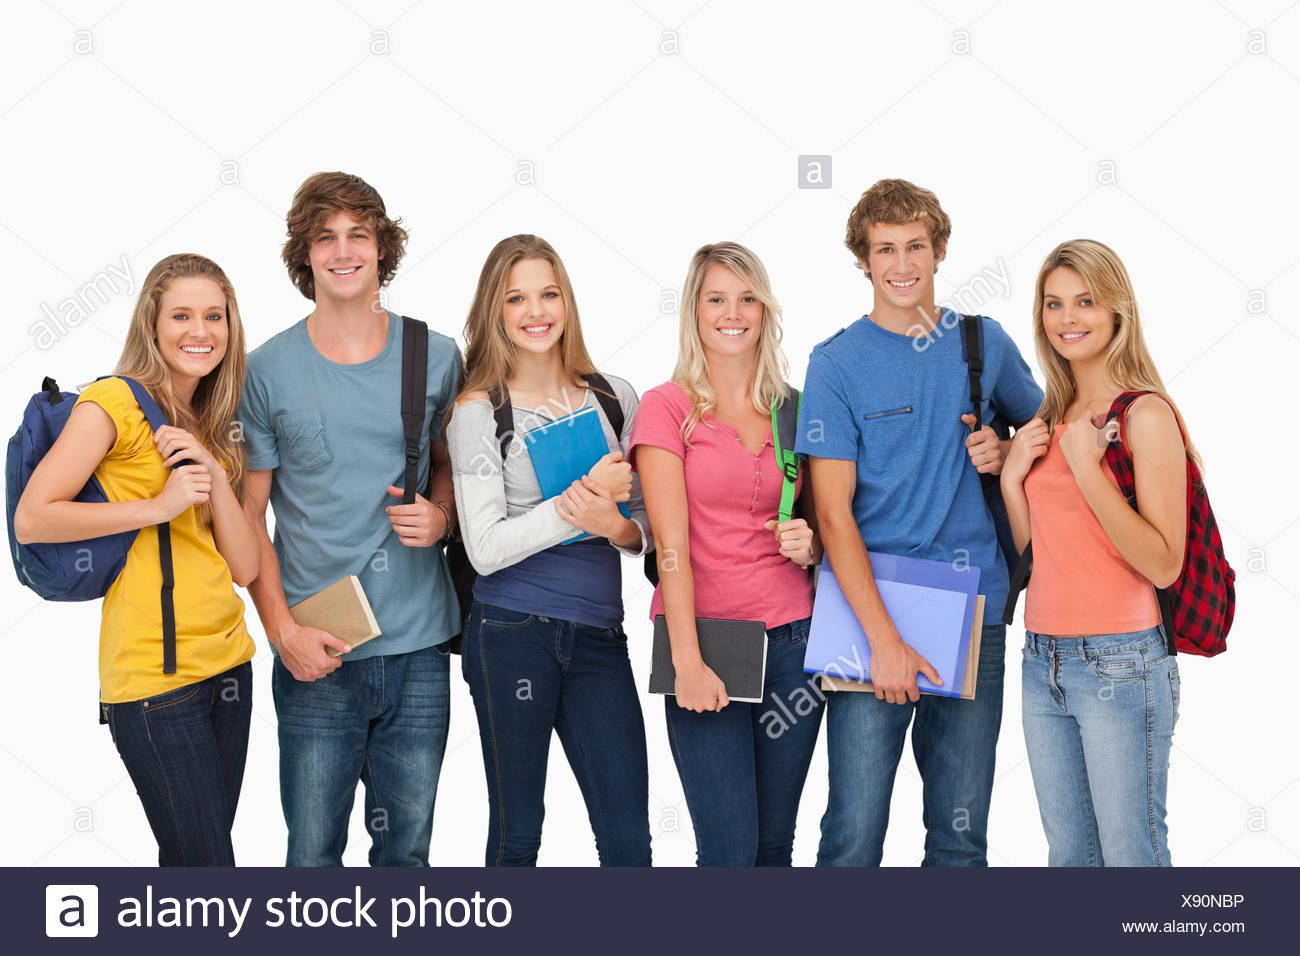 Smiling students all geared up for college - Stock Image